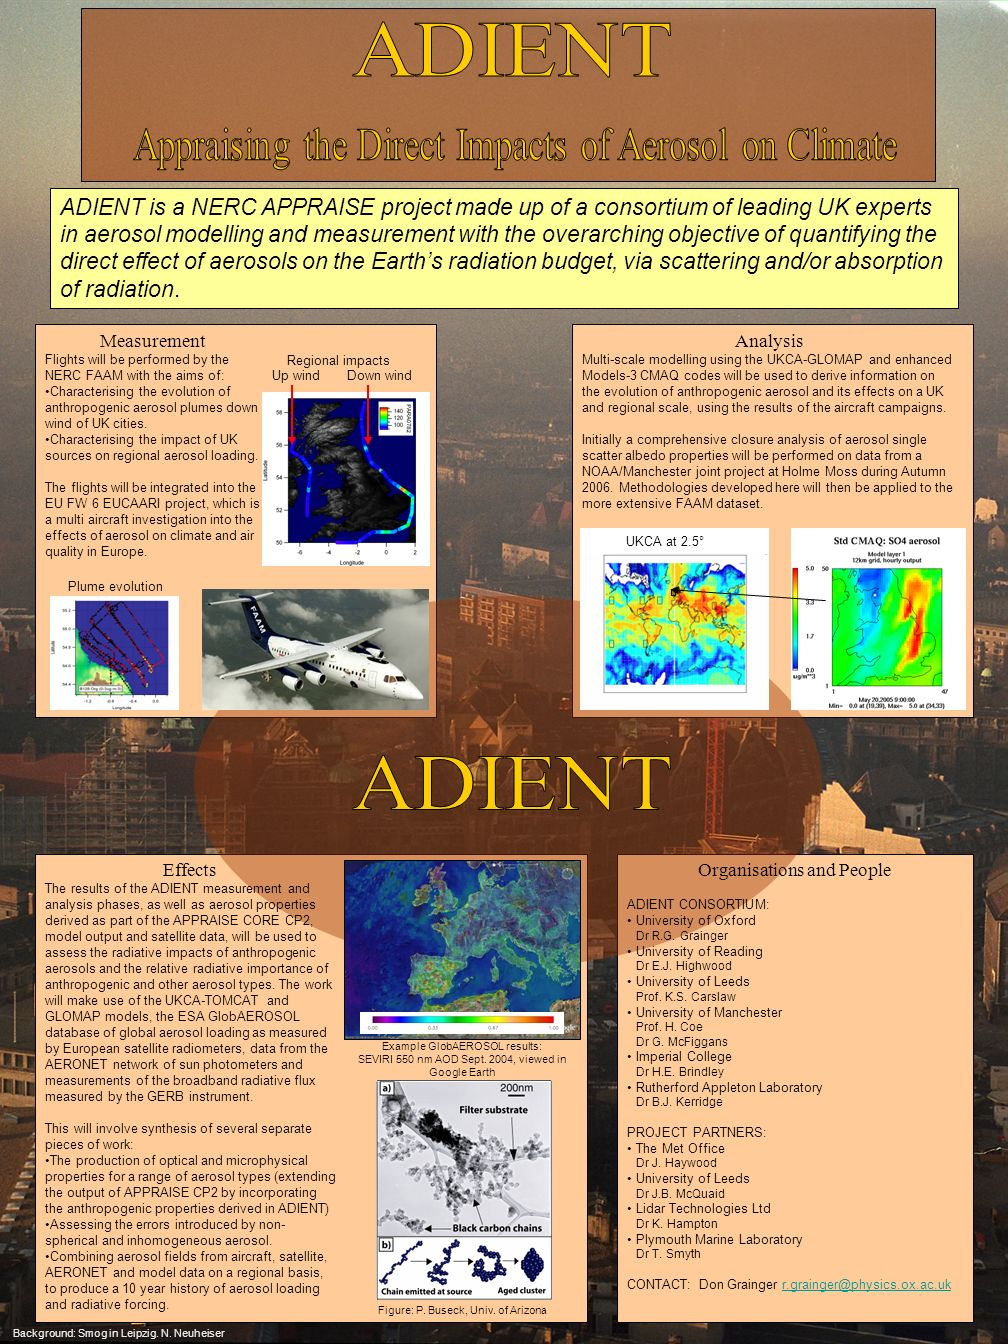 ADIENT is a NERC APPRAISE project made up of a consortium of leading UK experts in aerosol modelling and measurement with the overarching objective of quantifying the direct effect of aerosols on the Earths radiation budget, via scattering and/or absorption of radiation.